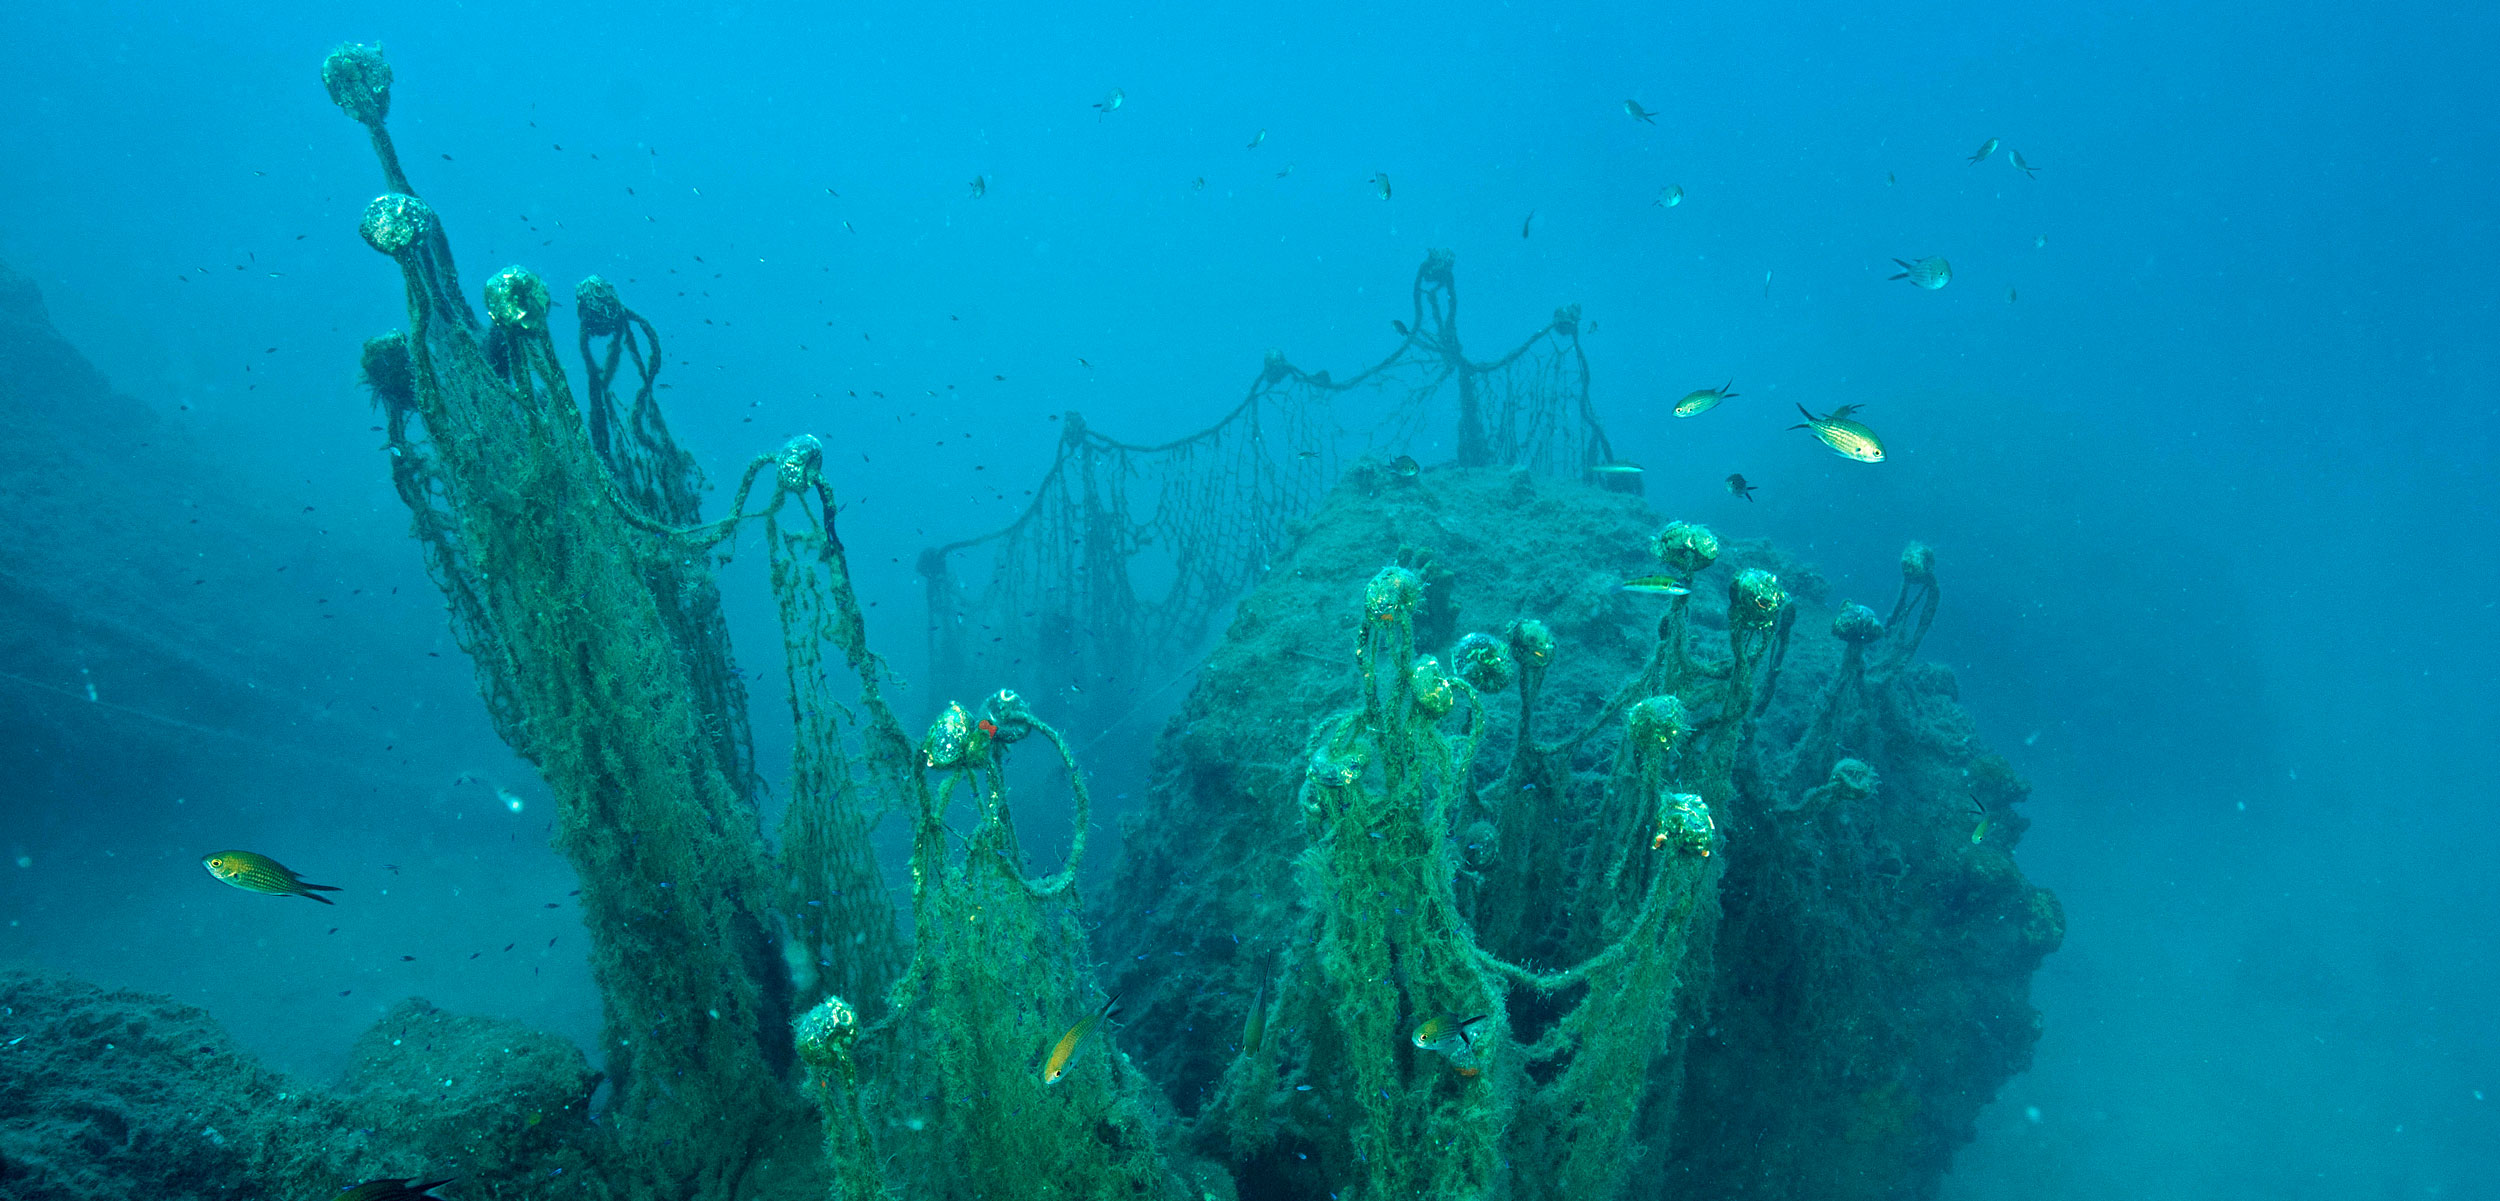 lost fishing gear on ocean floor